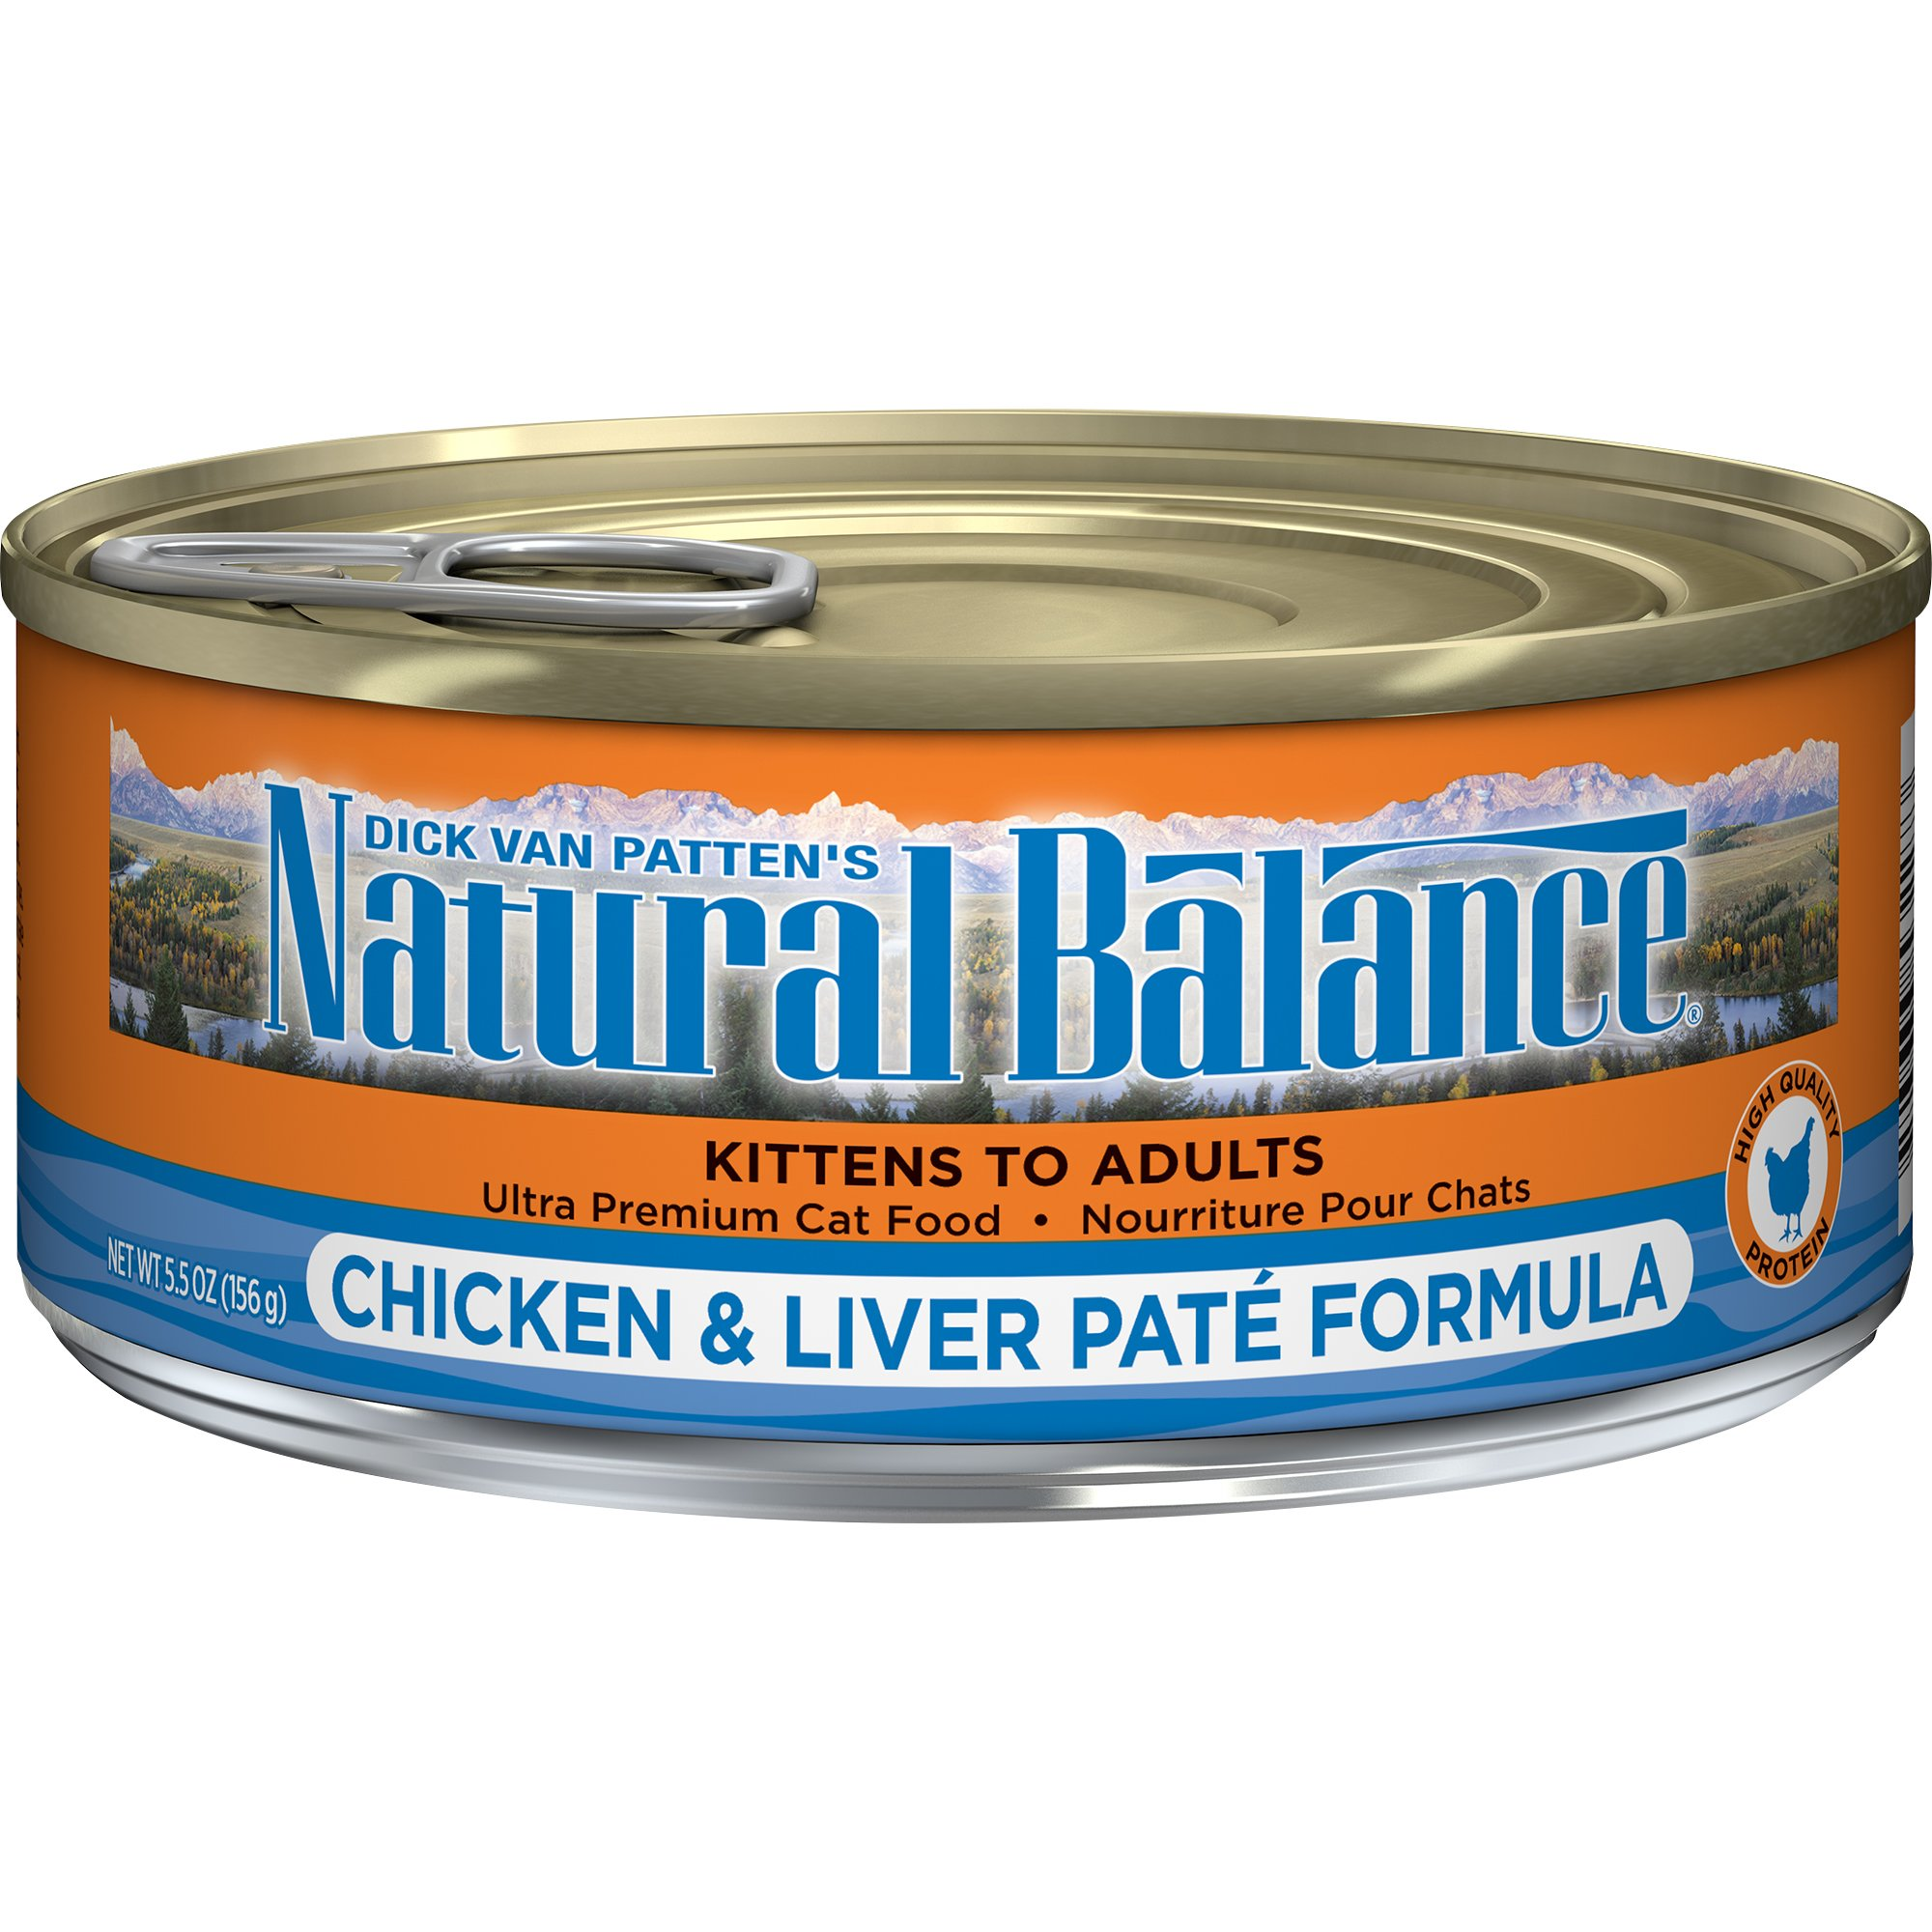 Natural Balance Chicken & Liver Paté Formula Wet Cat Food, 5.5-Ounce Can (Pack Of 24) by Natural Balance